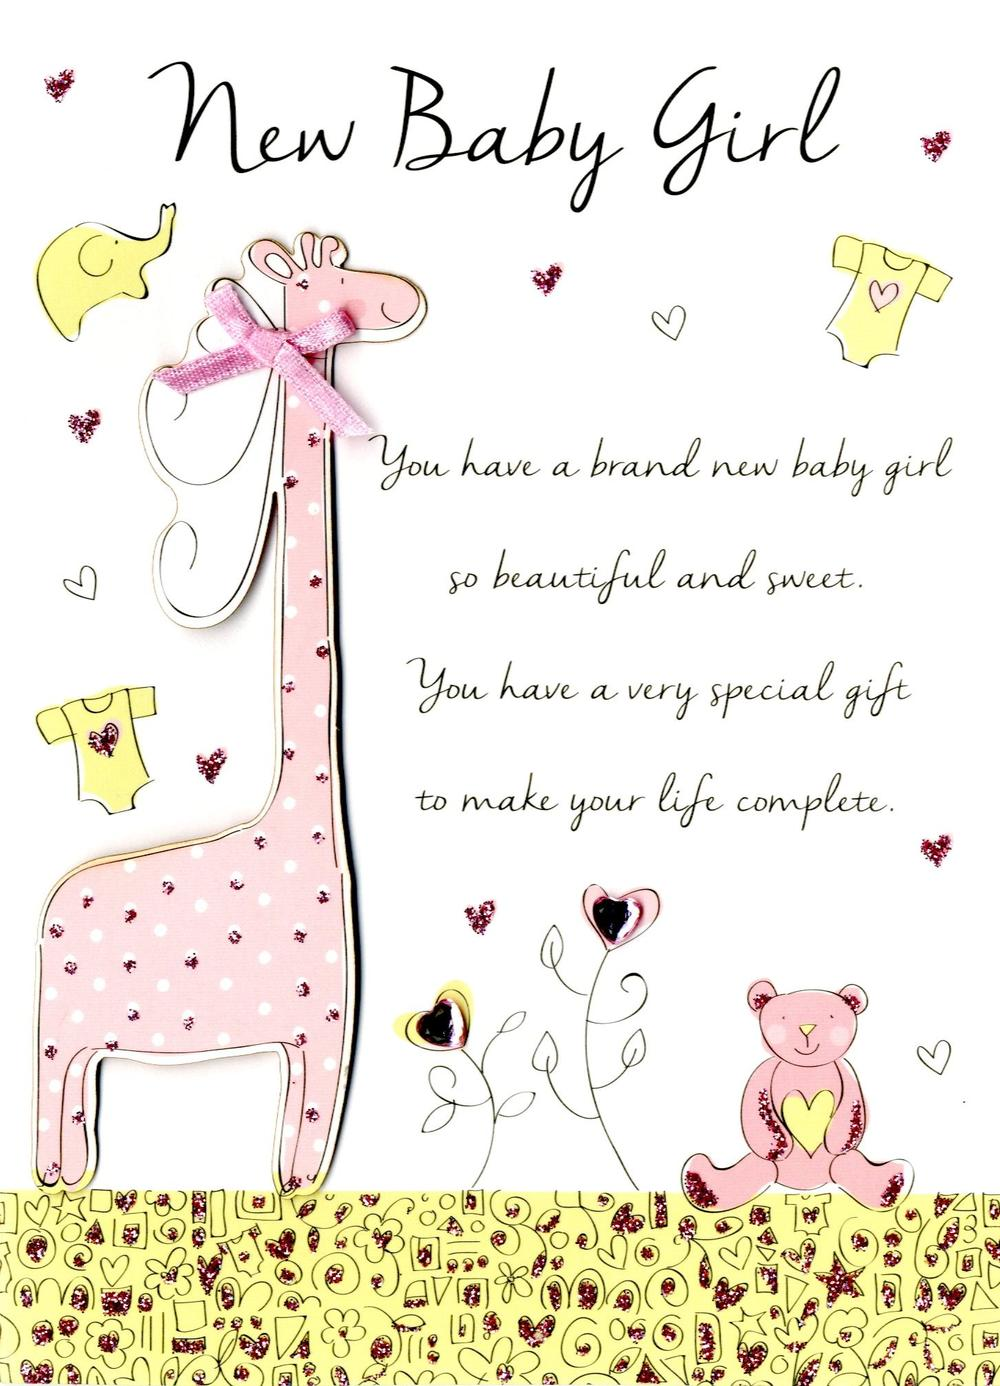 New baby girl congratulations greeting card cards love kates new baby girl congratulations greeting card m4hsunfo